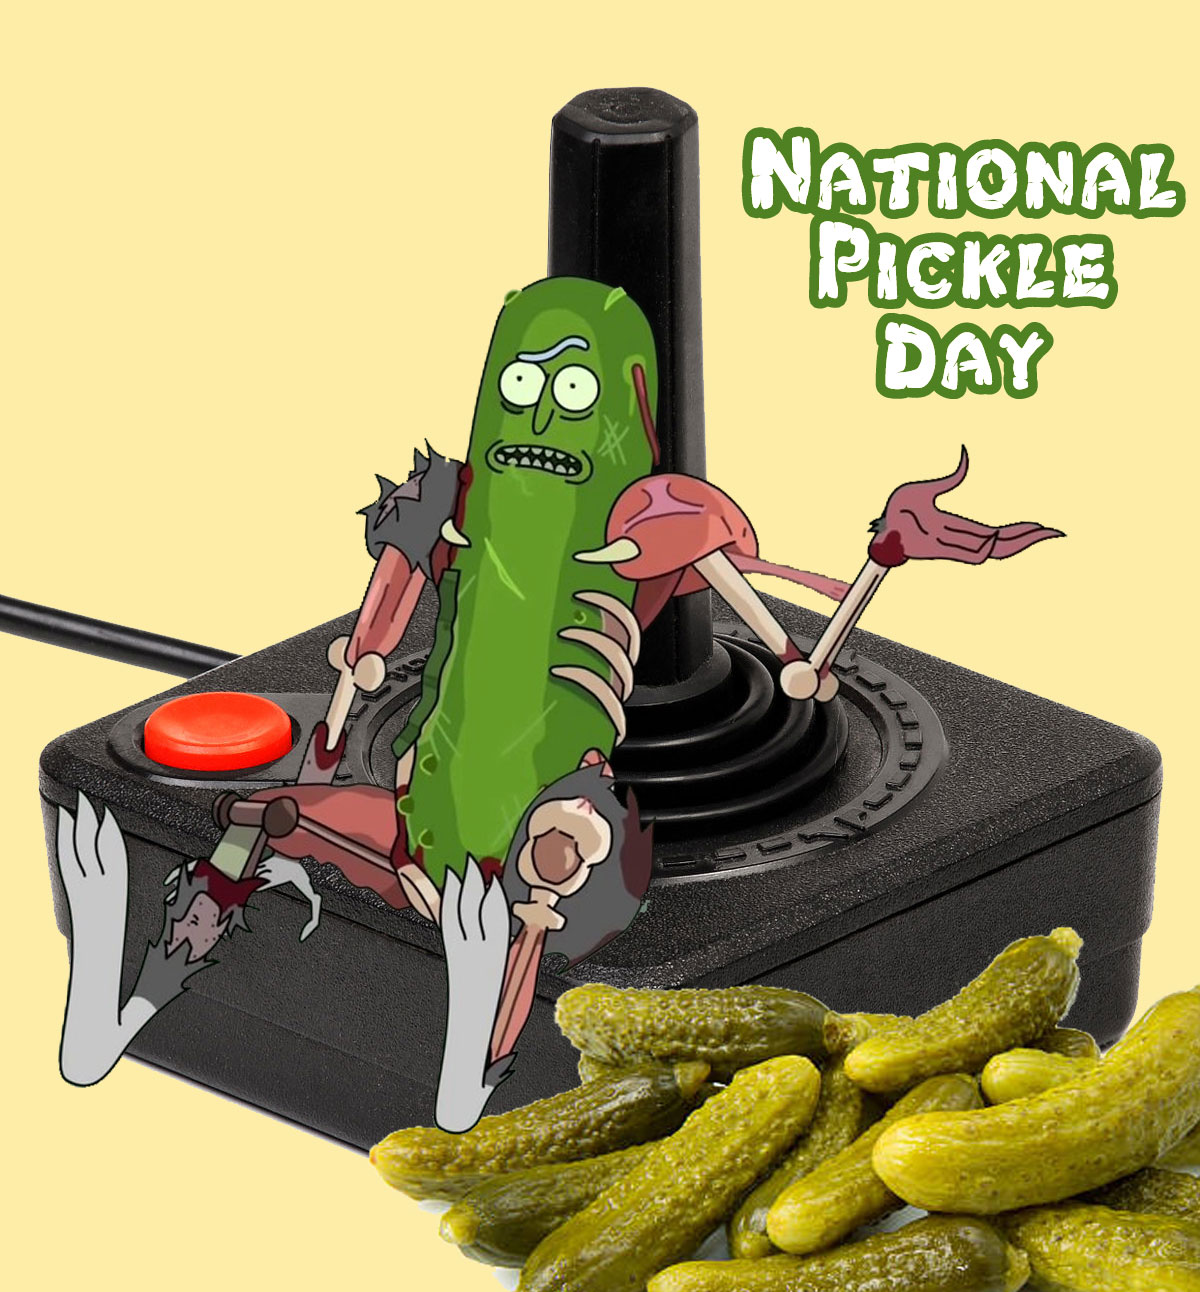 Rick & Morty's Pickle Rick on National Pickle Day